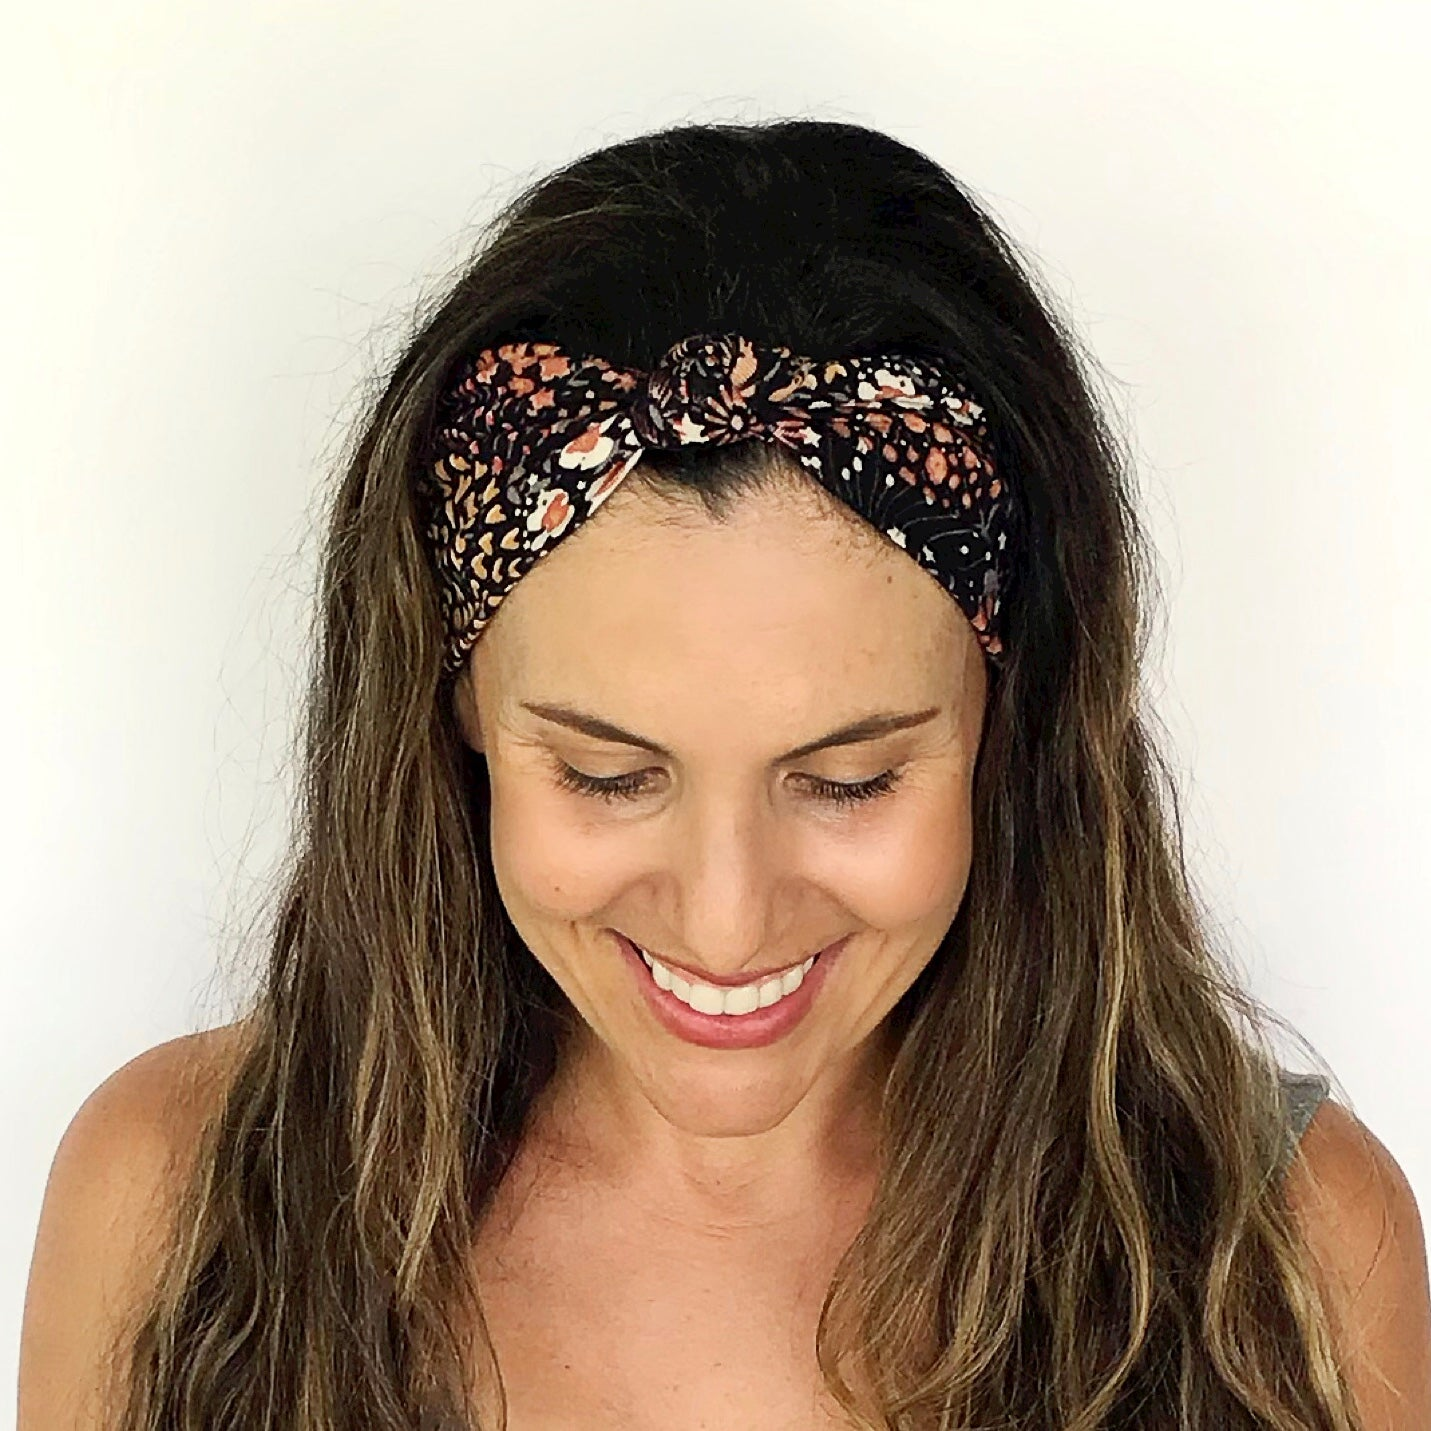 Esther Knotted Headband